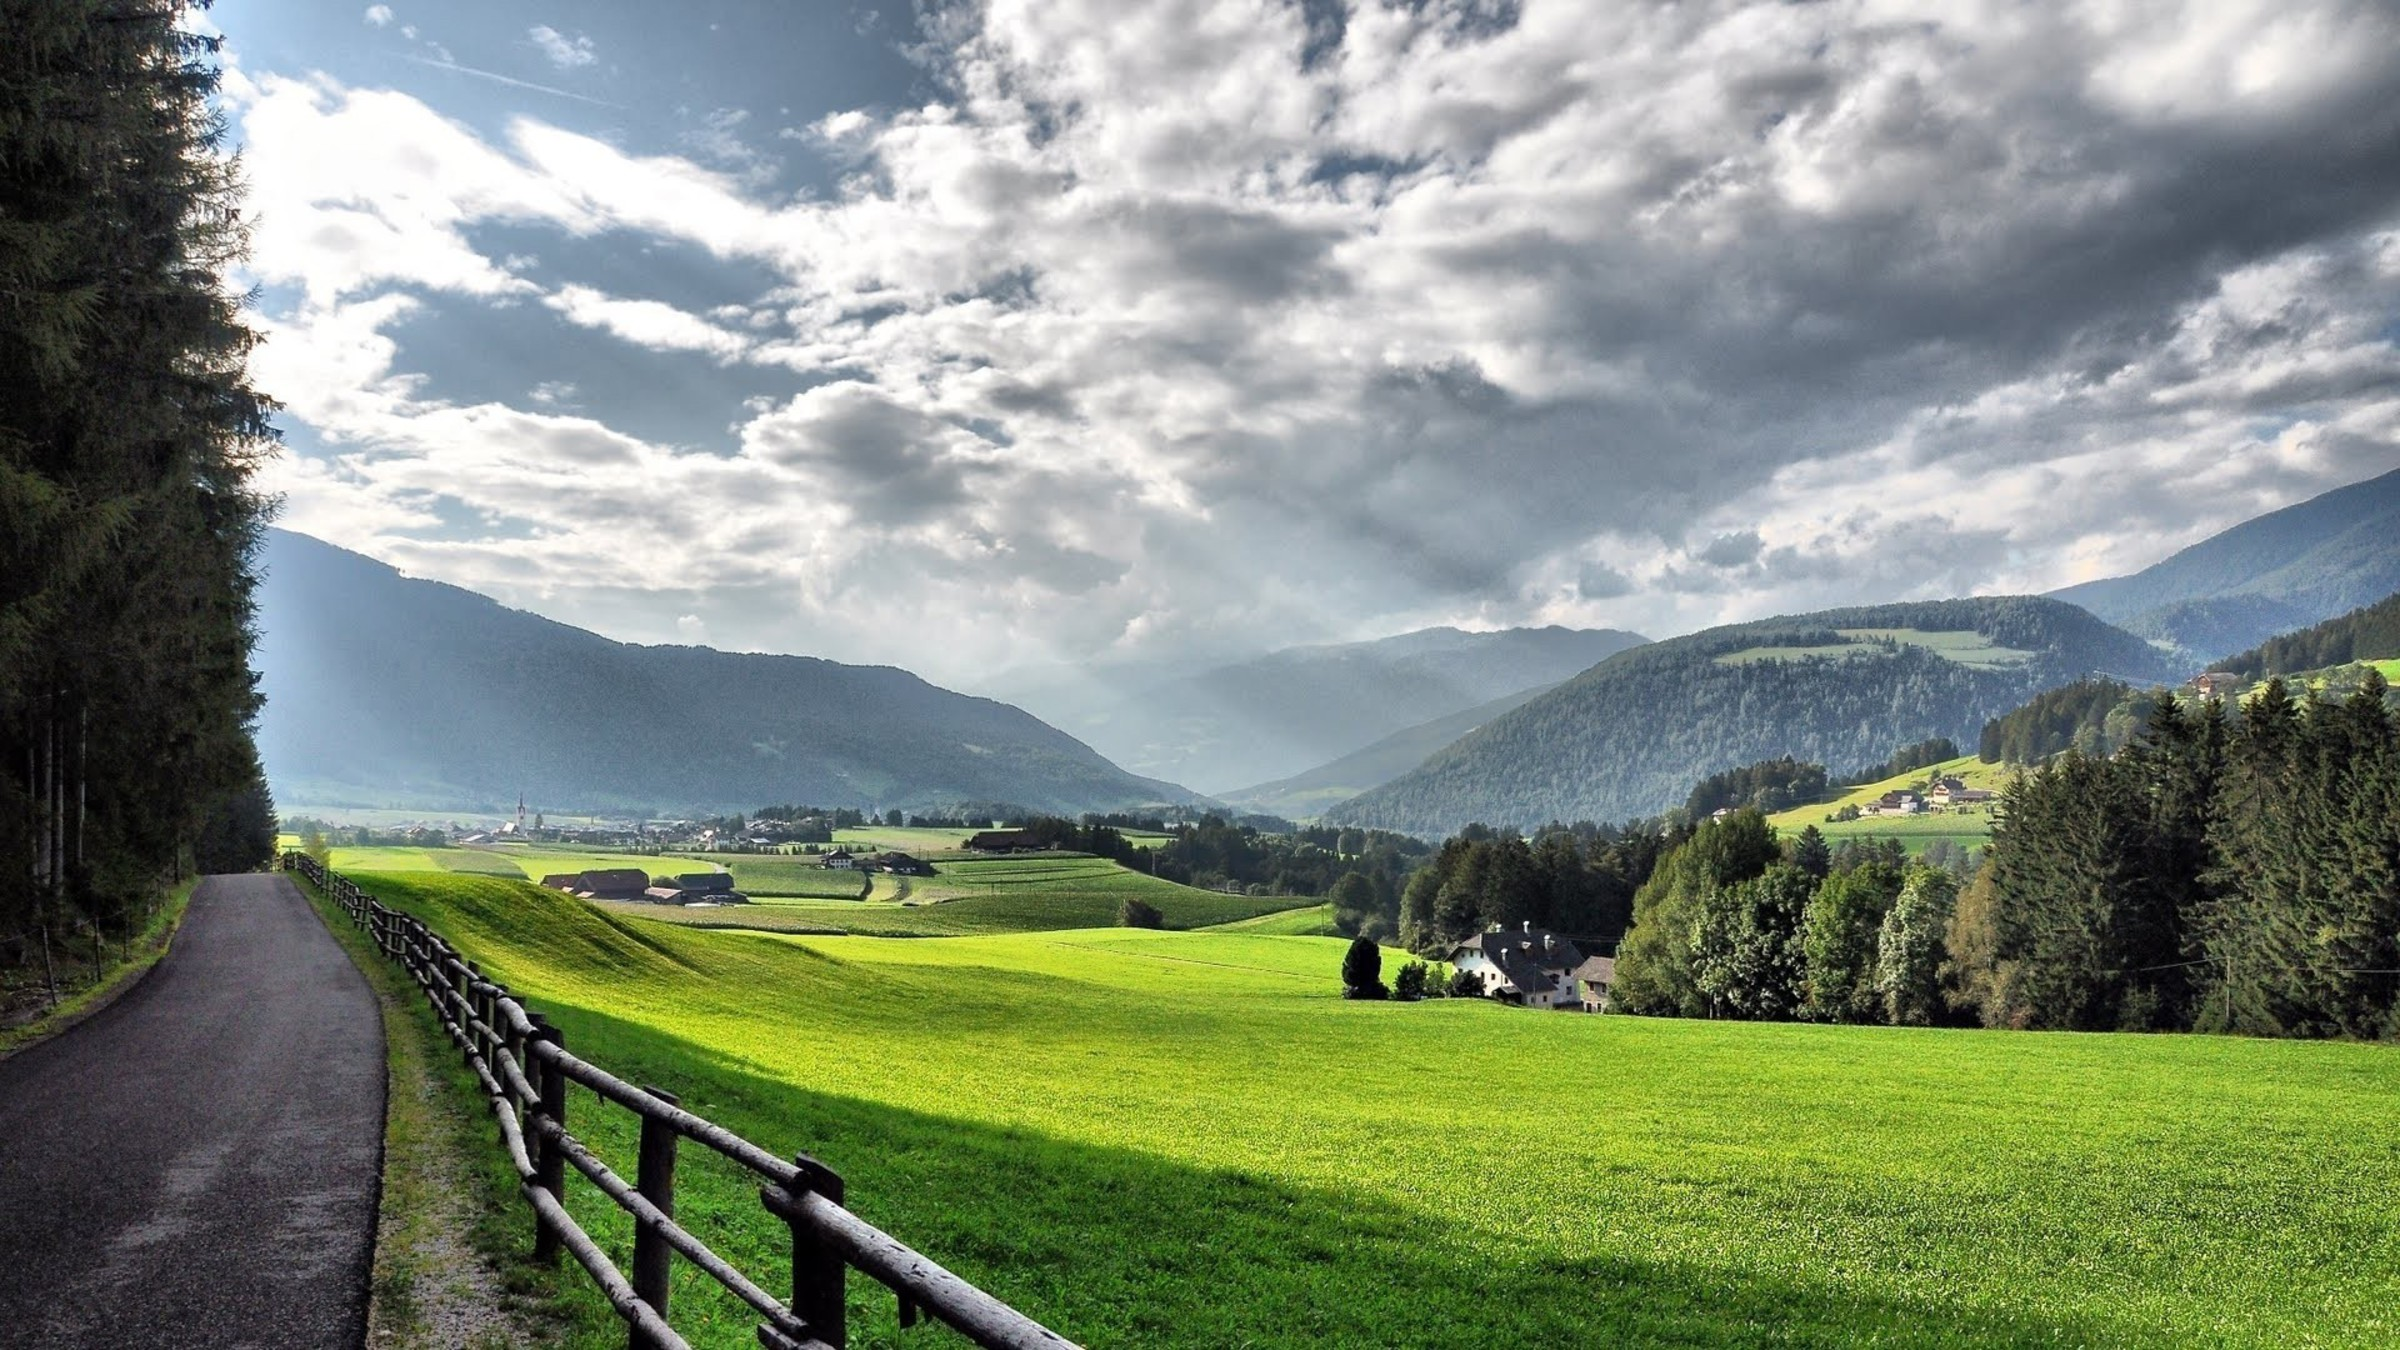 Thru A Beautiful Alpine Valley In Summer Wallpaper